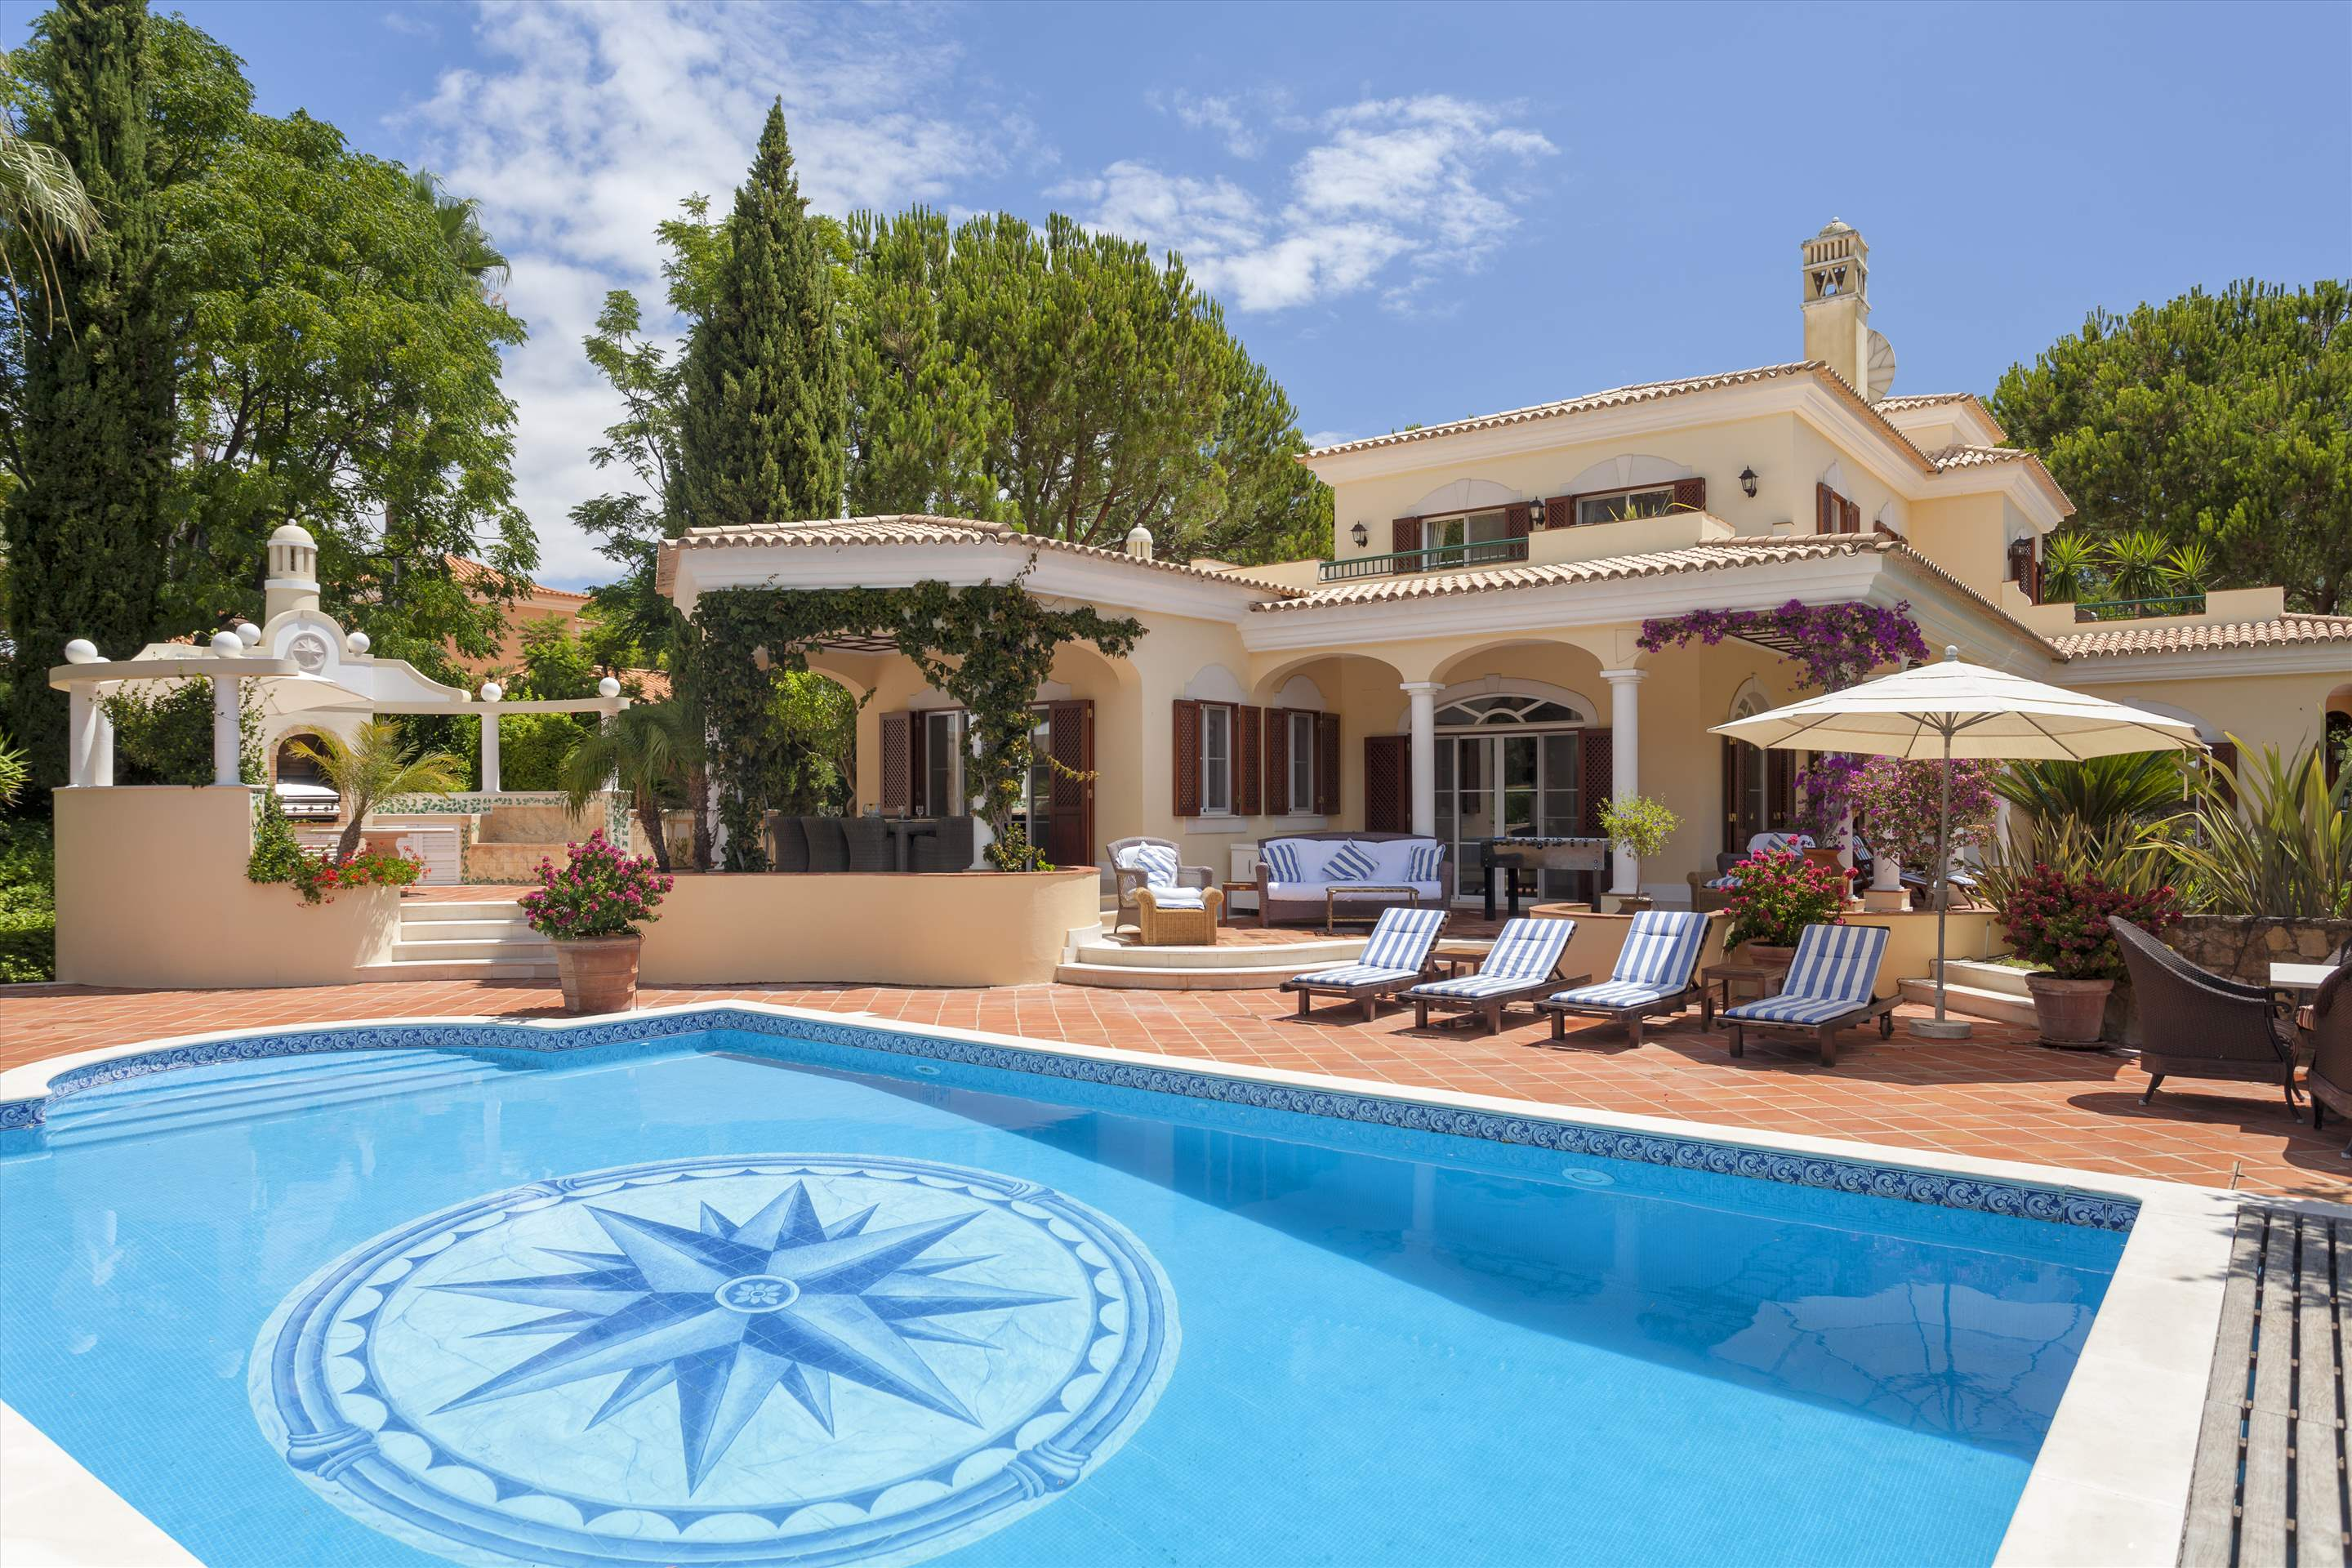 Villa Panache, 4 bedroom villa in Quinta do Lago, Algarve Photo #1